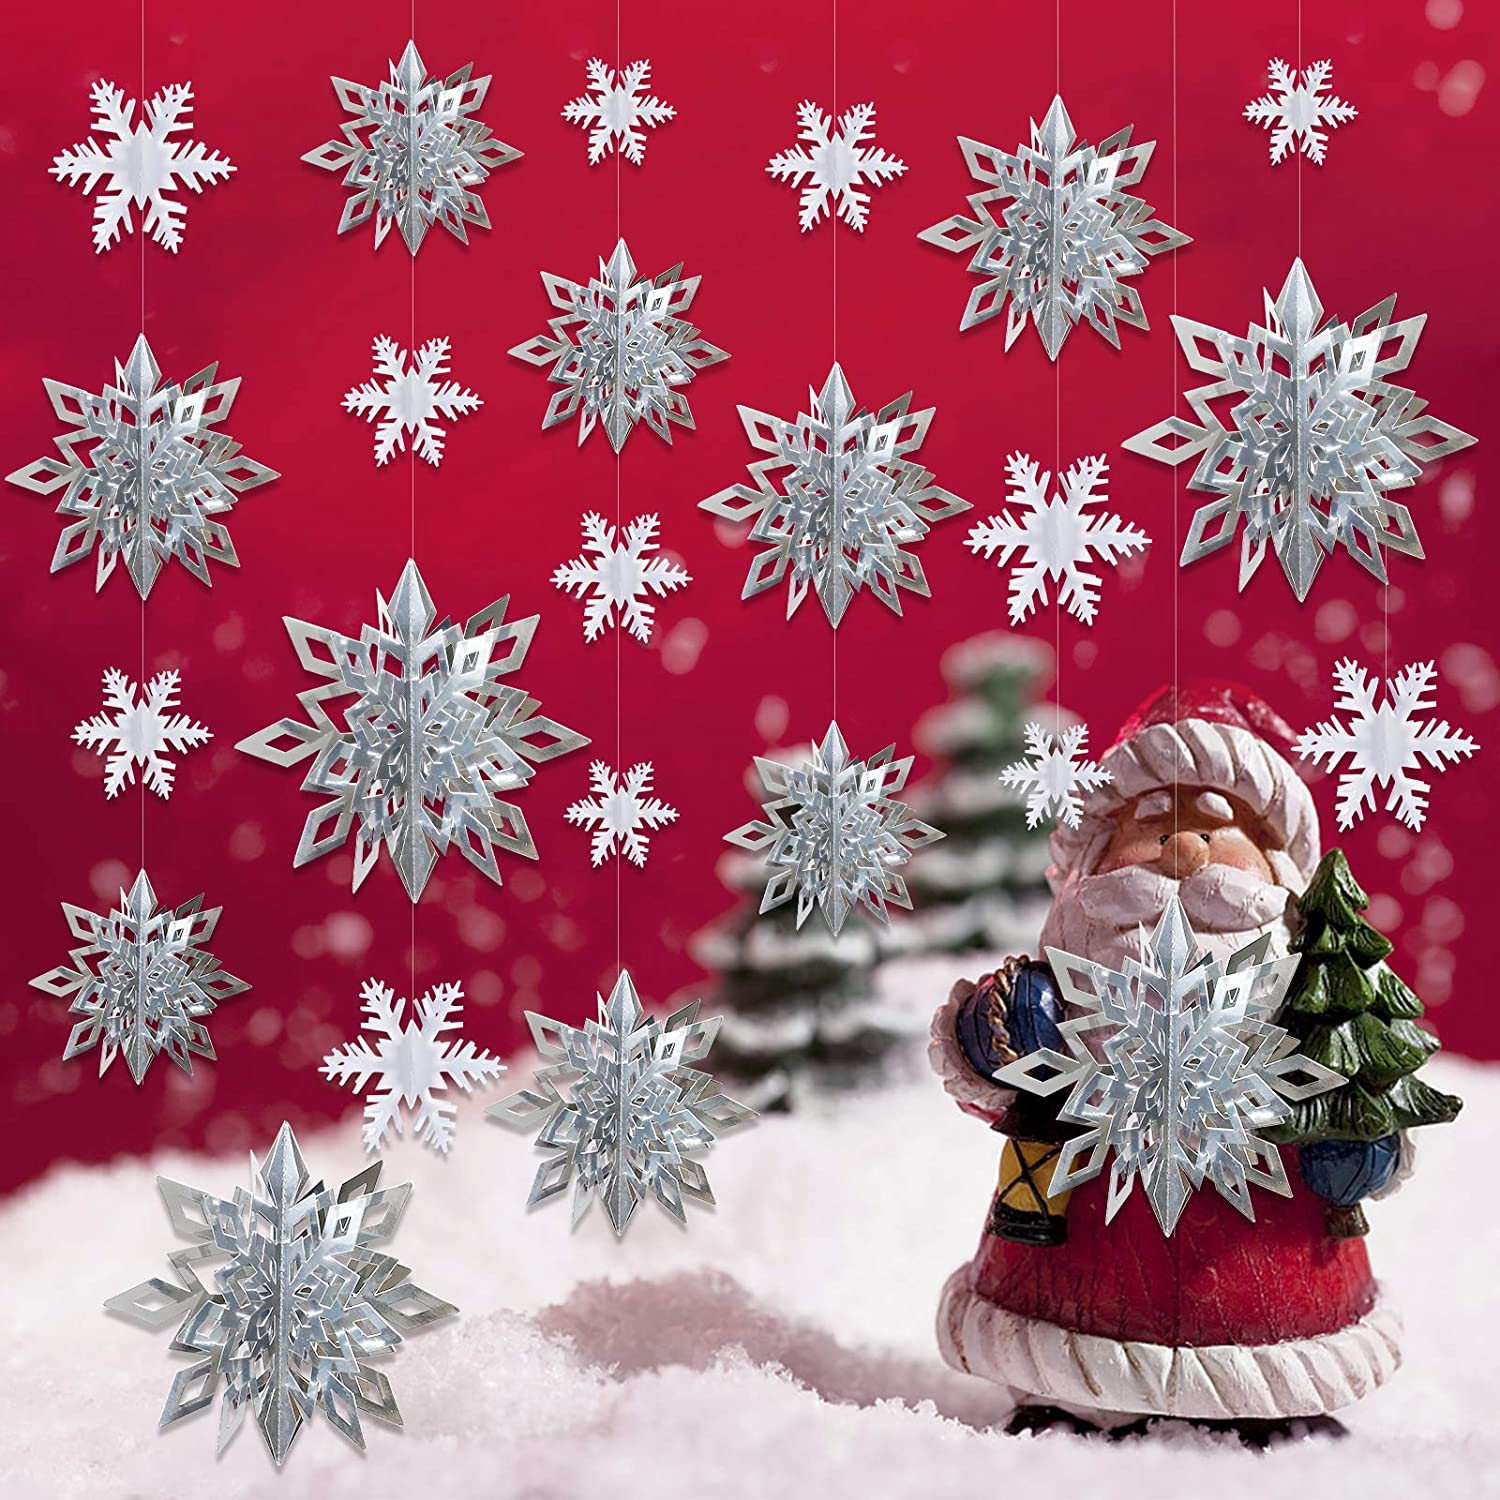 Christmas Hanging Snowflake Decorations - 12PCS Large 3D Silver Snowflakes & 12PCS White Snowflakes Hanging Garland for Winter Christmas Holiday New Year Party Home Decor